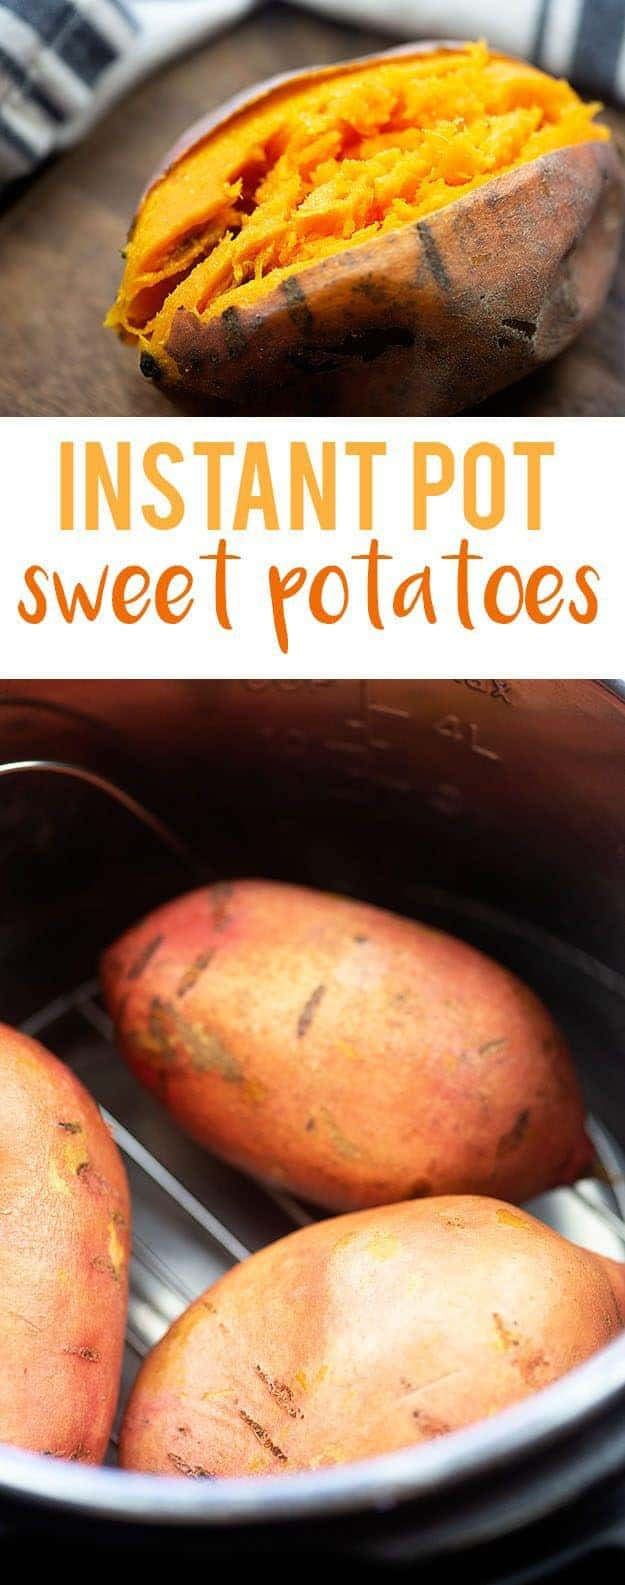 Baked sweet potatoes in the Instant Pot! They come out so fluffy and perfect! #instantpot #sweetpotatoes #recipe